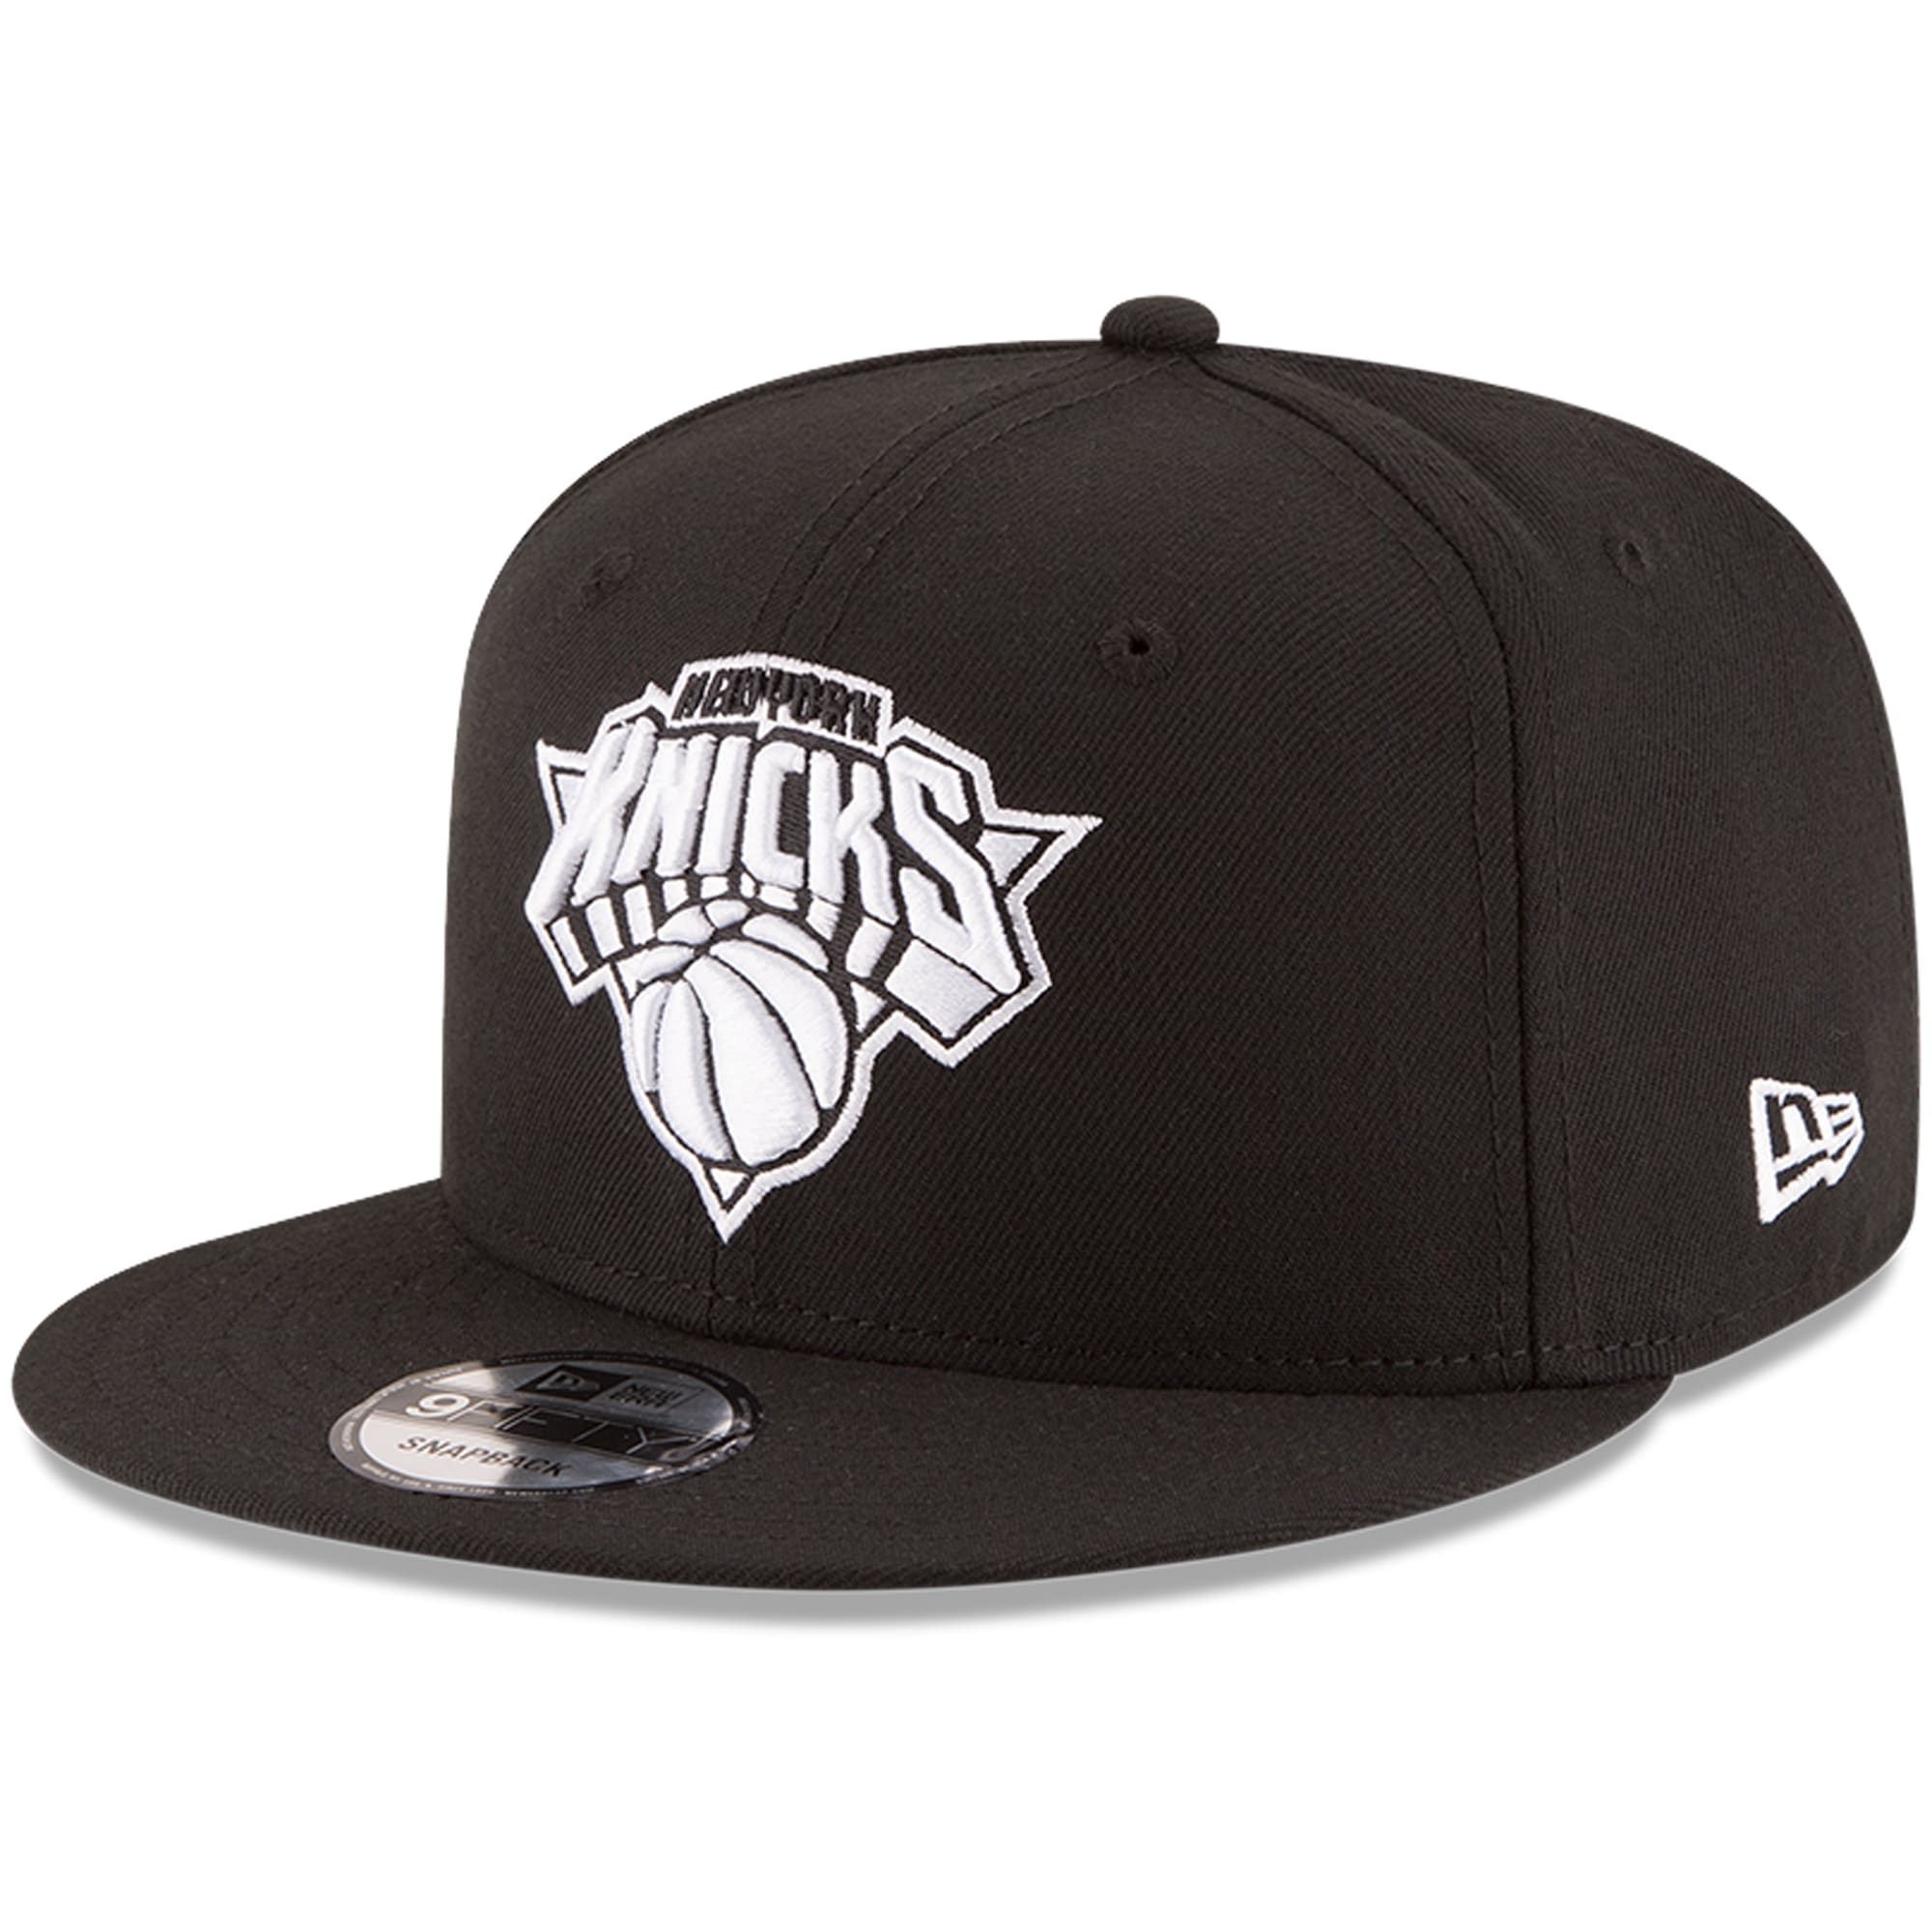 New York Knicks New Era Black & White Logo 9FIFTY Adjustable Snapback Hat - Black